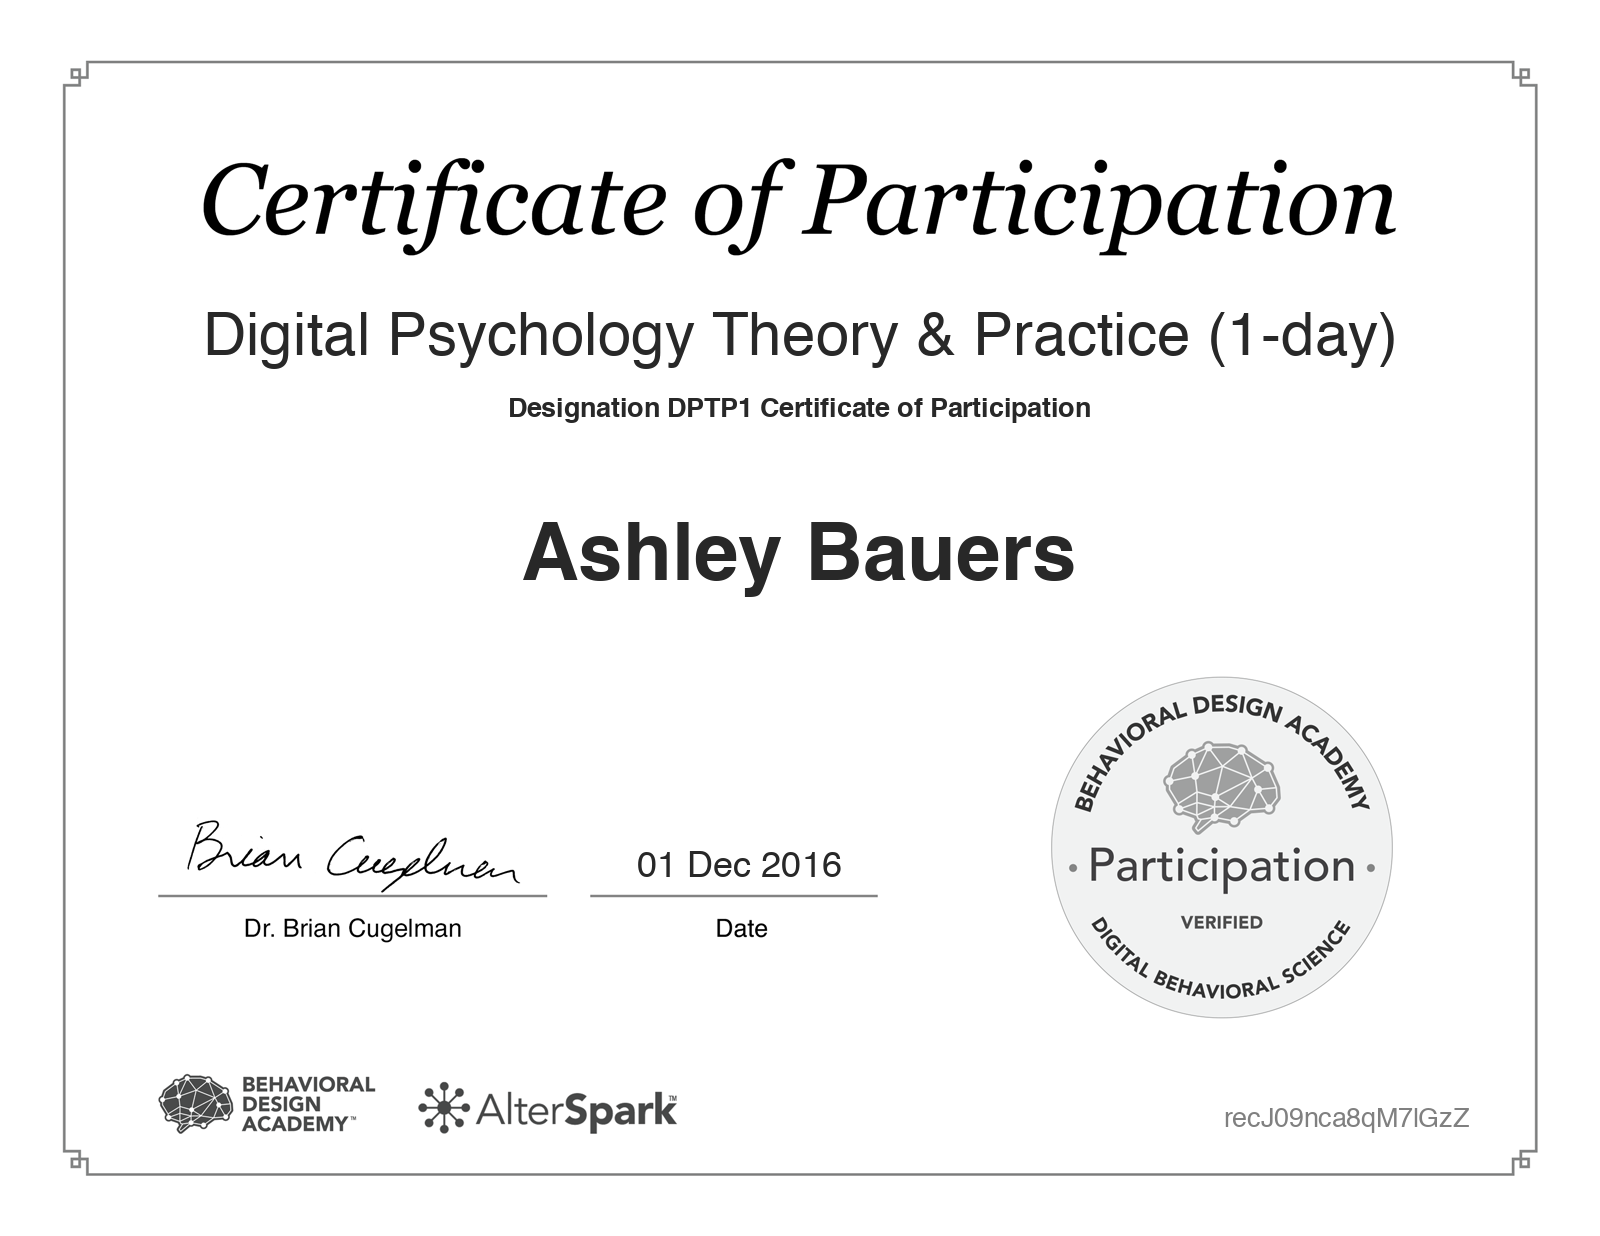 Digital Psychology Theory & Practice (1-day)